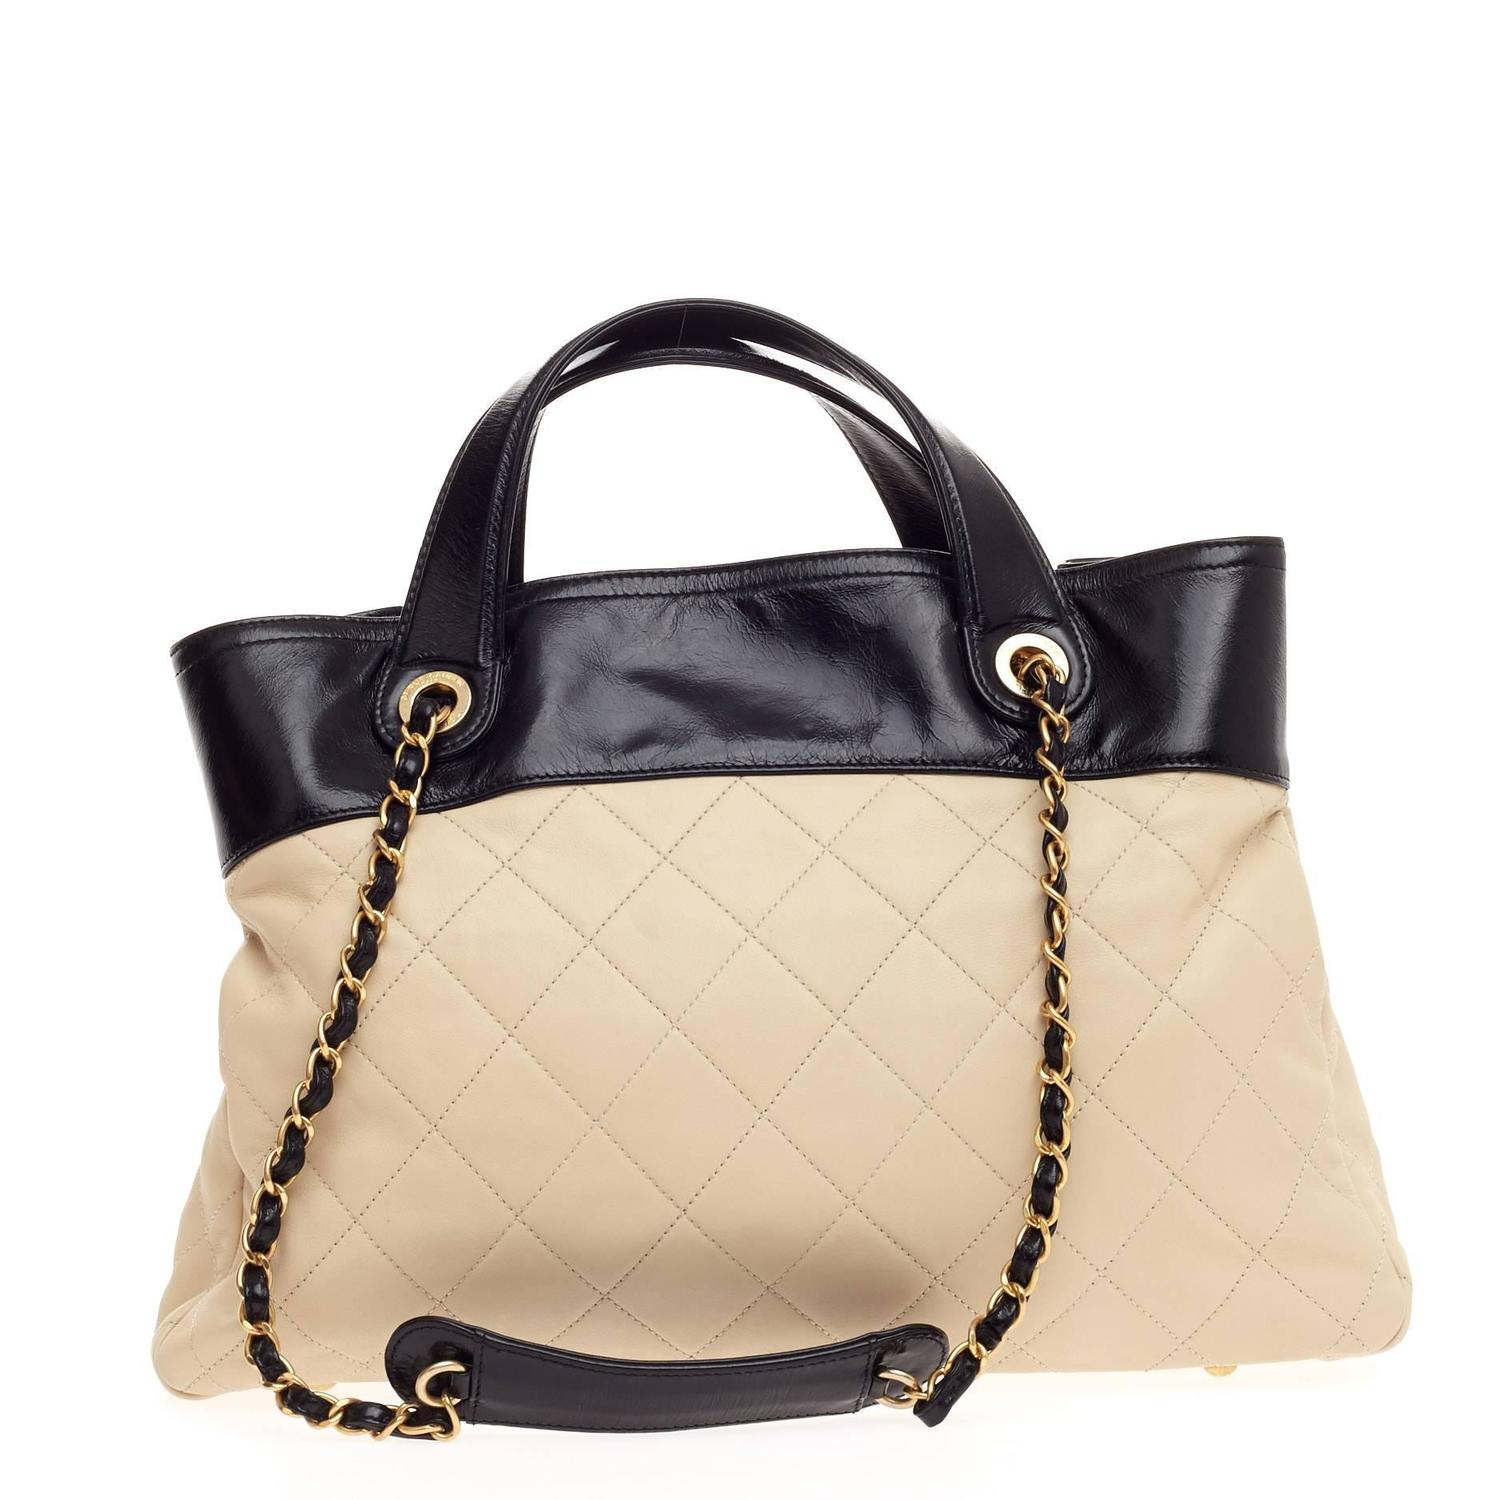 4949d6e569c490 Chanel Large Shopping Bag Calfskin | Stanford Center for Opportunity ...